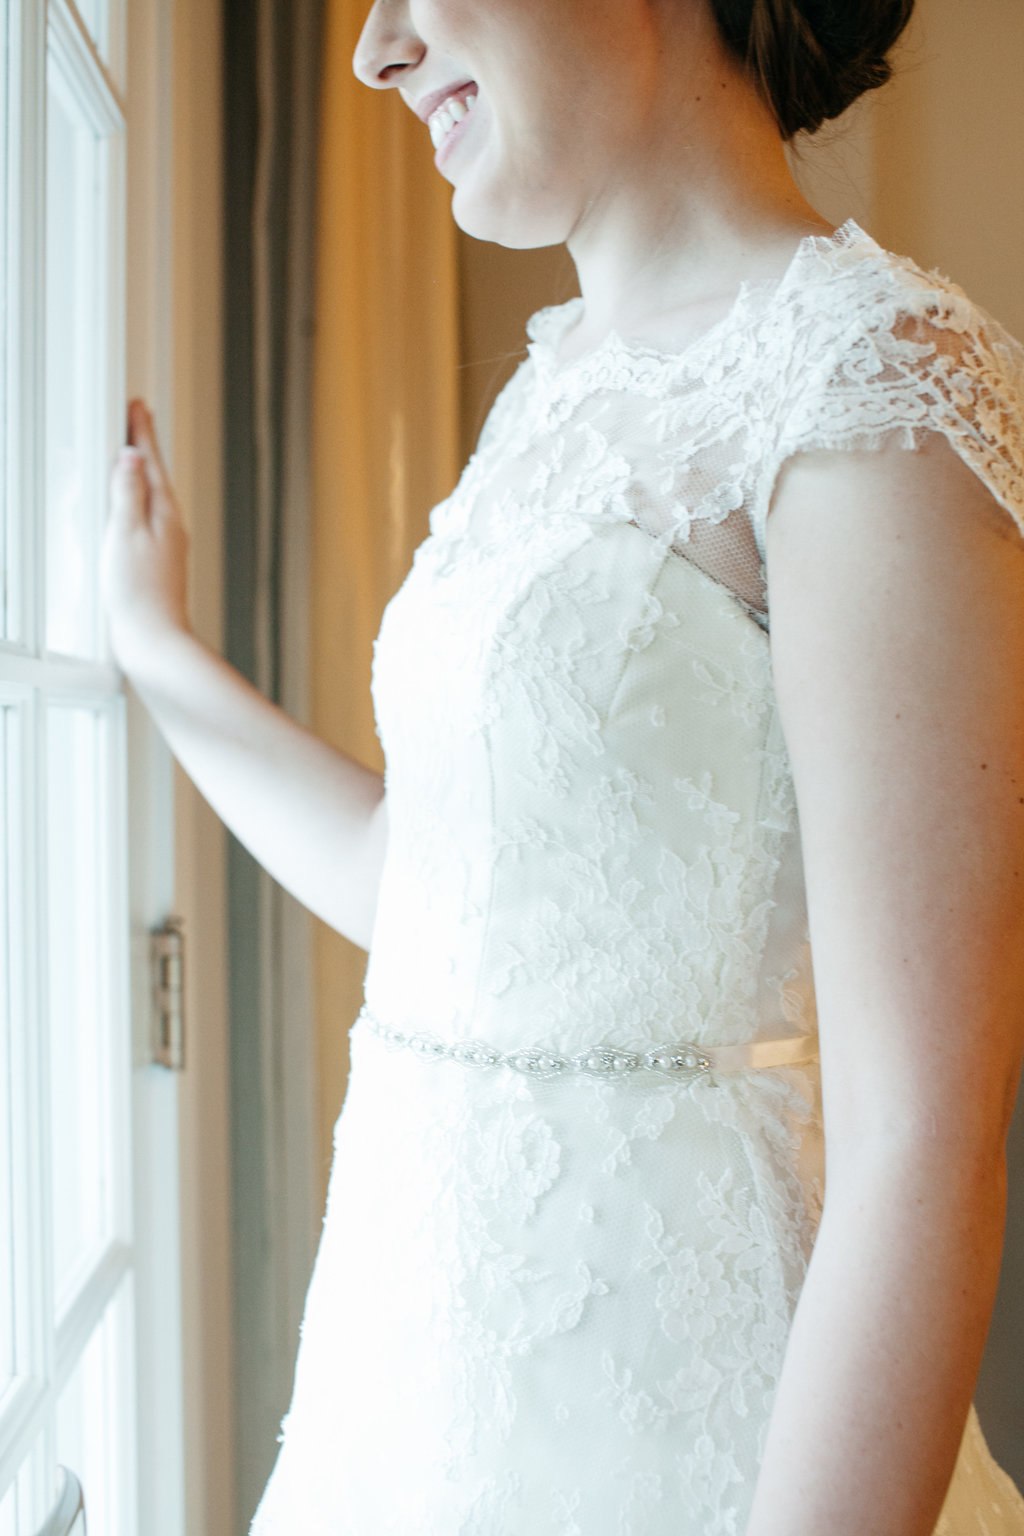 Lace Wedding gown, St. Luke's Methodist Ceremony